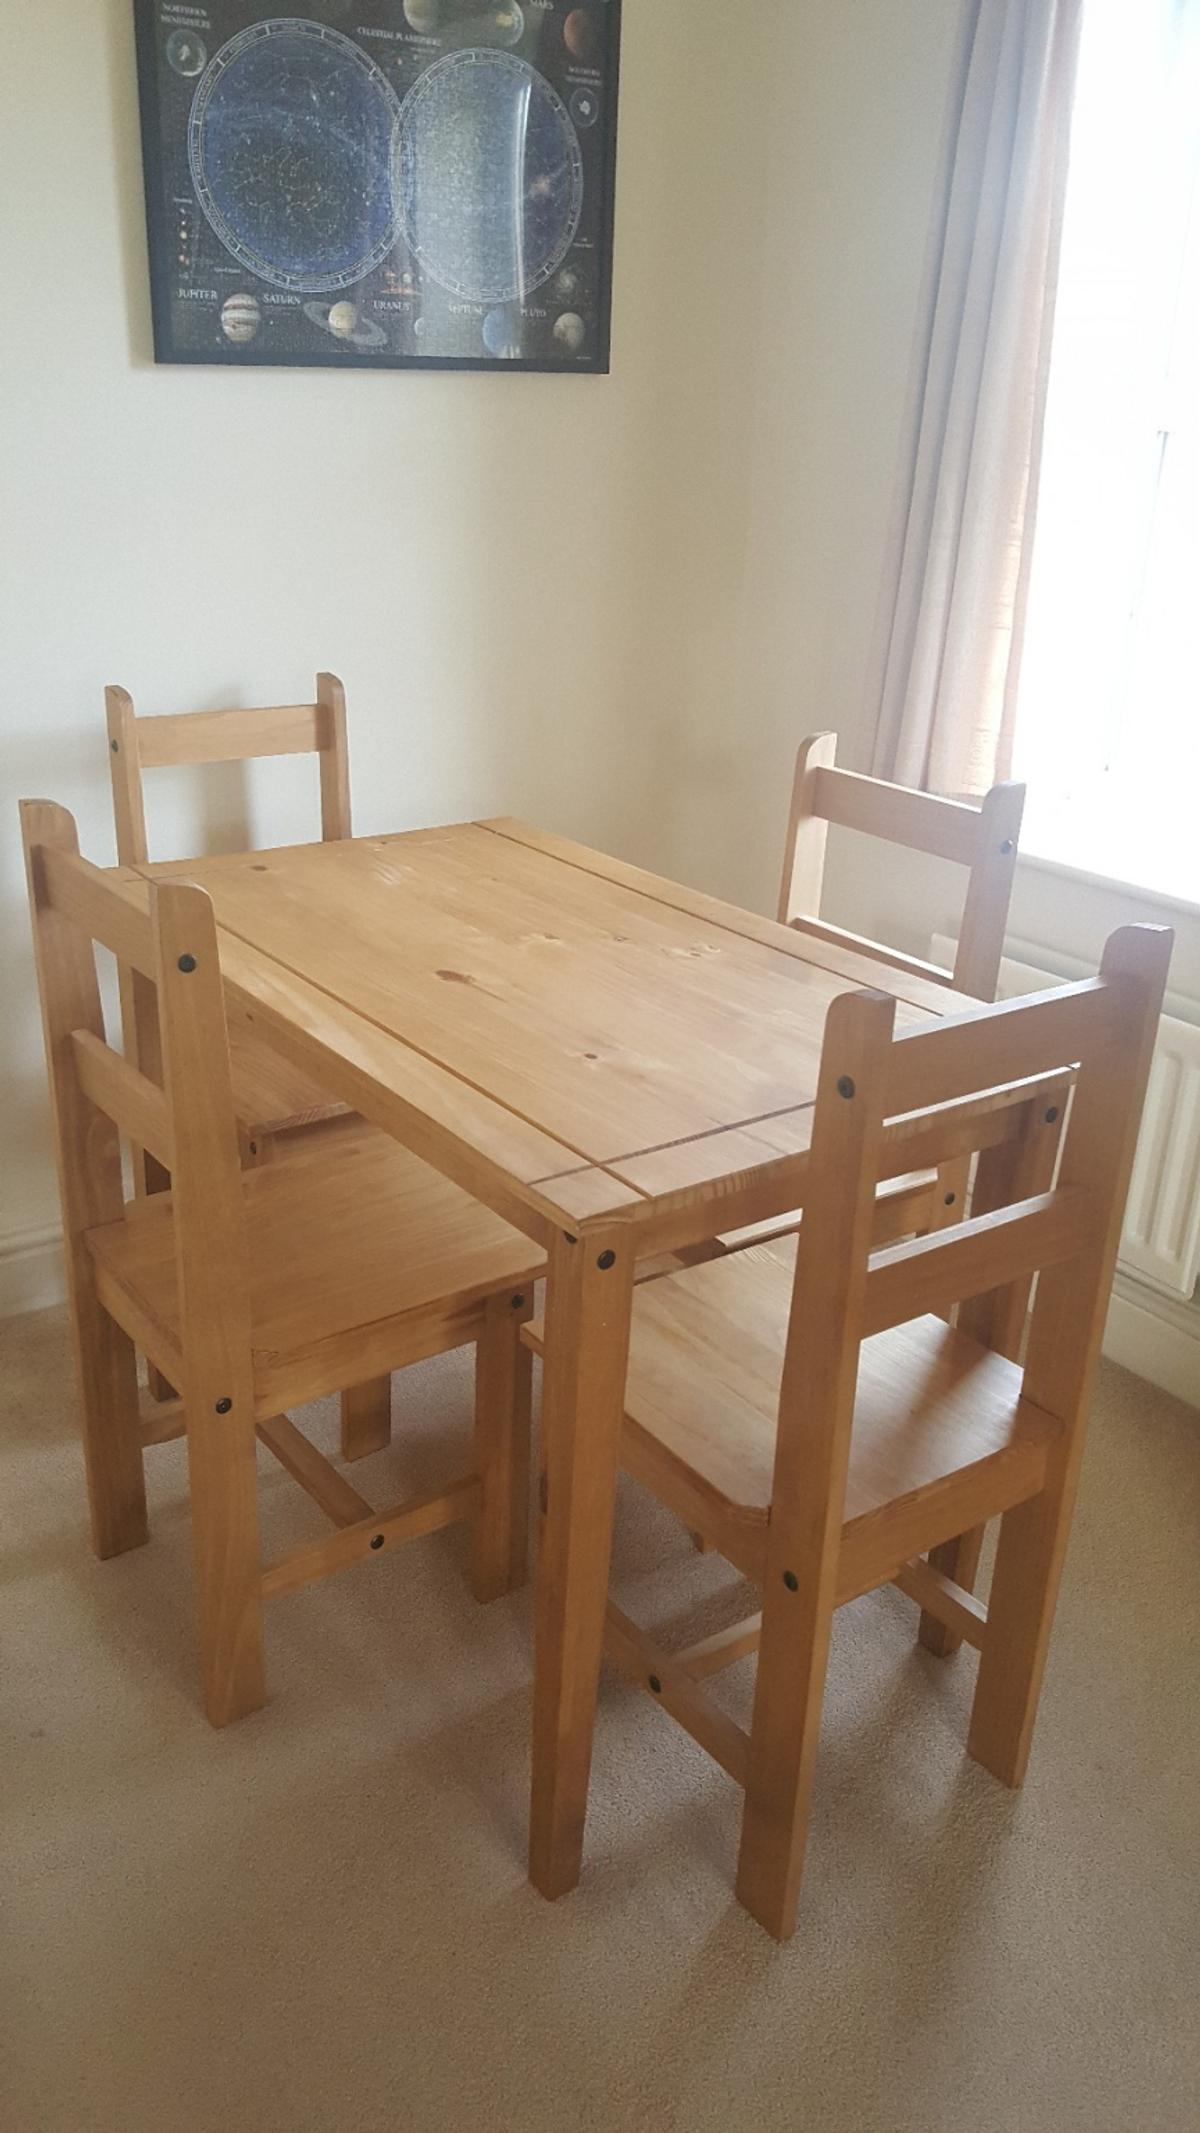 Corona Small Dining Table 4 Chairs In Eastbourne Fur 70 00 Zum Verkauf Shpock At